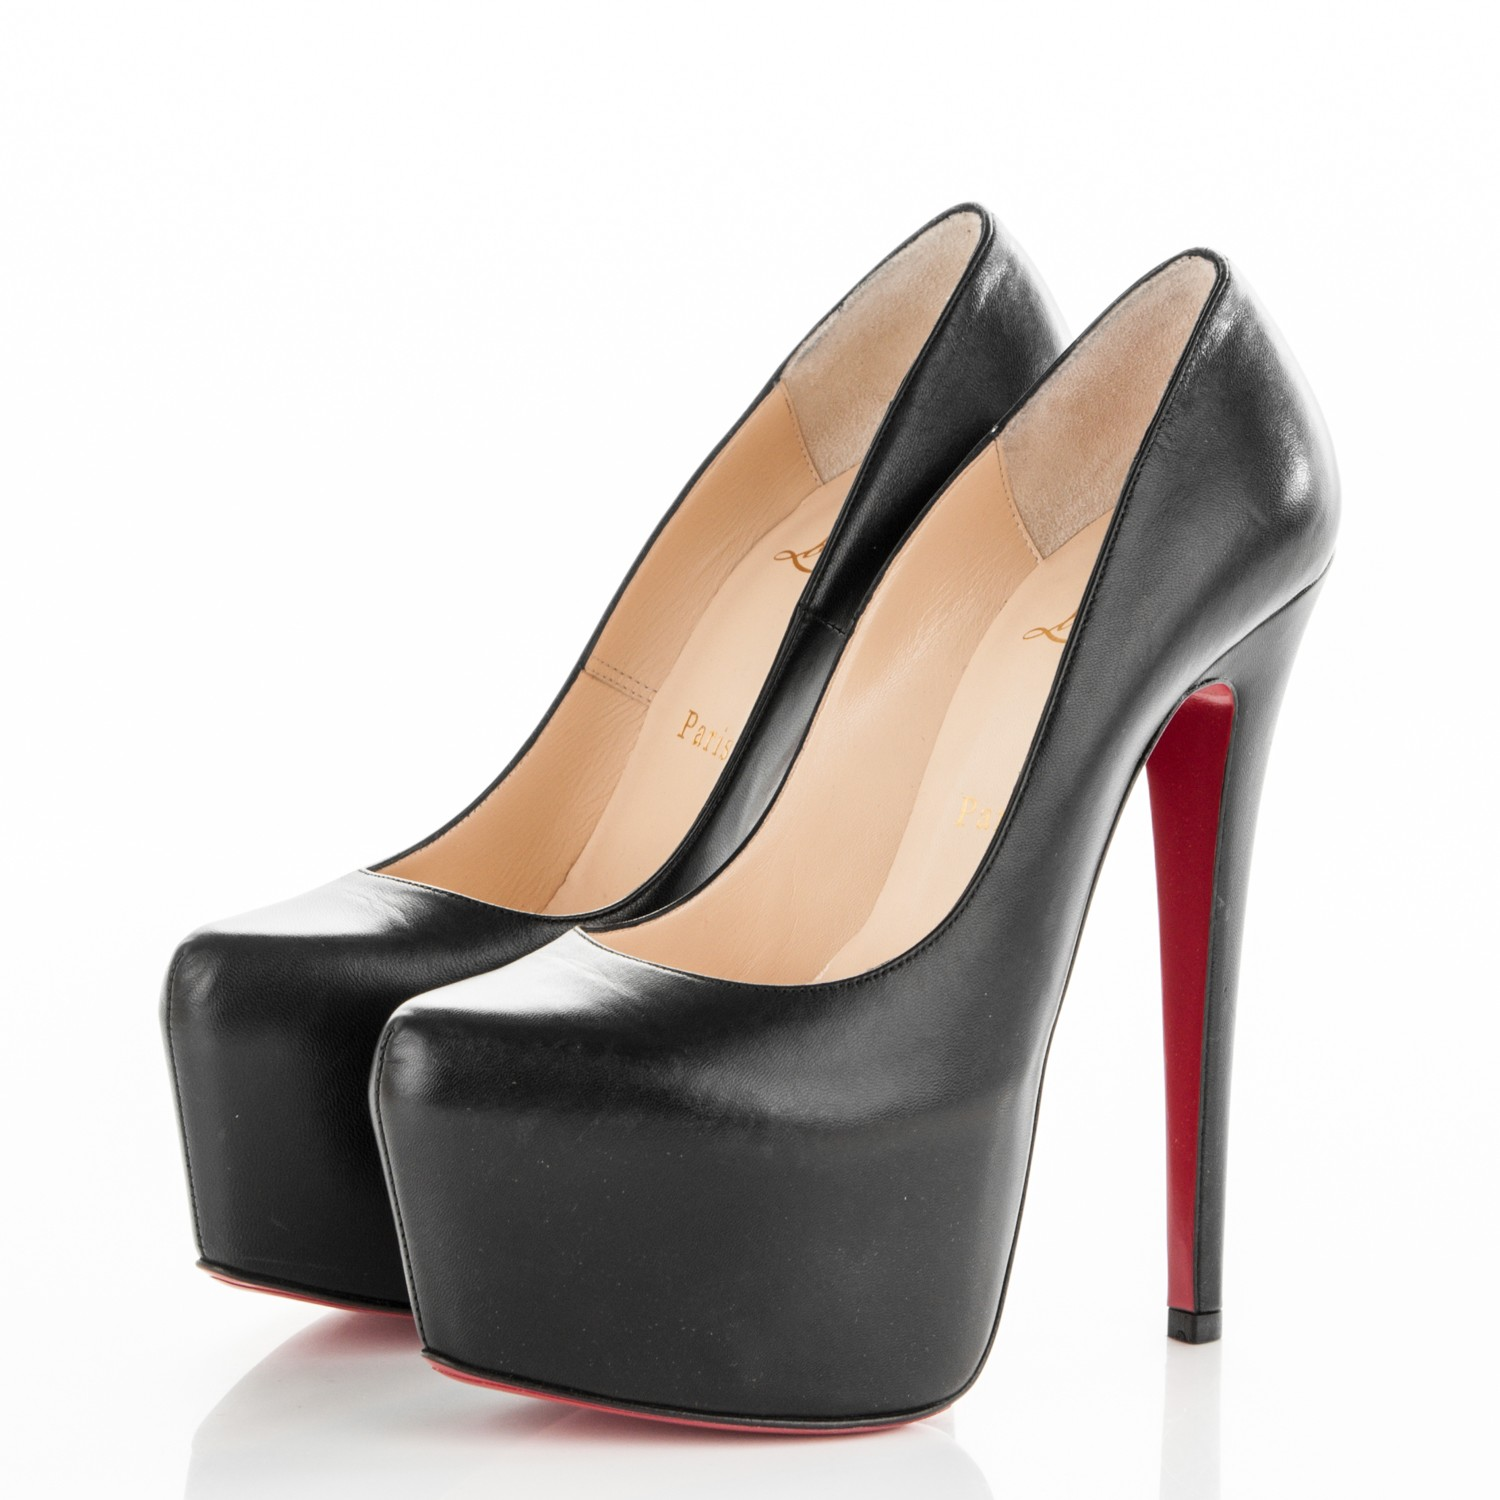 low priced e4984 b42a6 Christian Louboutin Black Daffodile 160 Kid Pumps